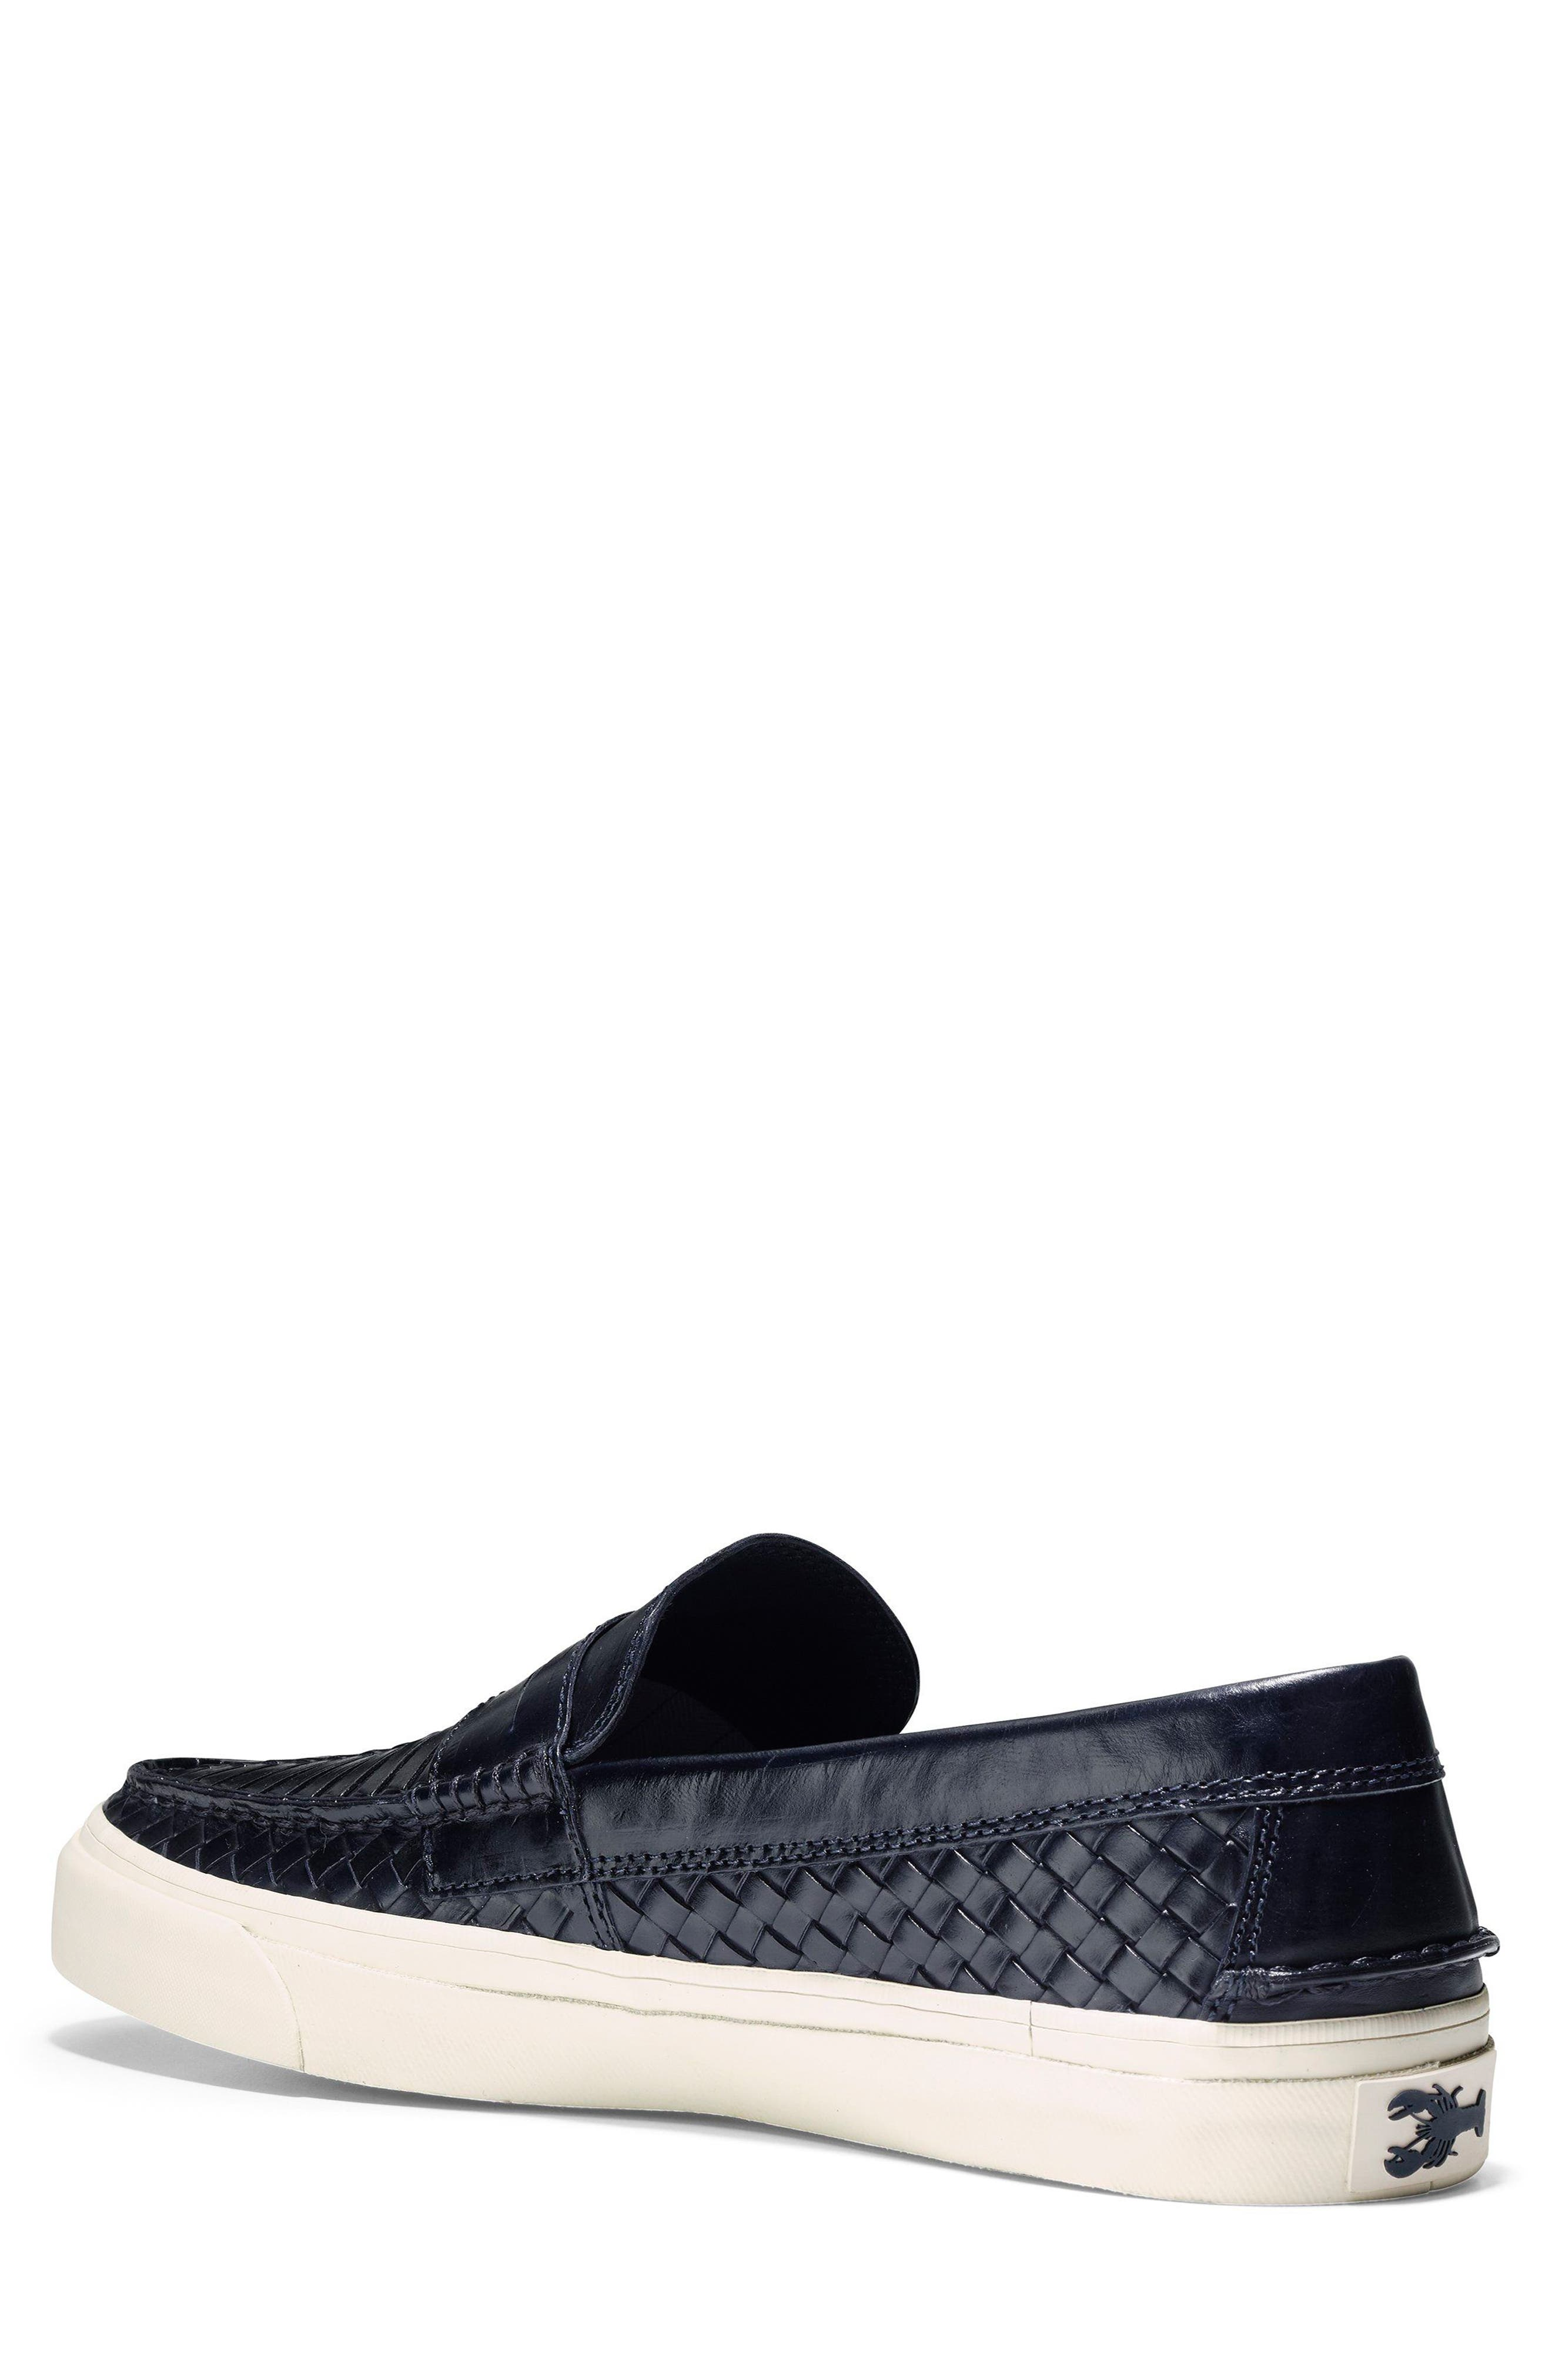 Pinch Weekend LX Huarache Loafer,                             Alternate thumbnail 6, color,